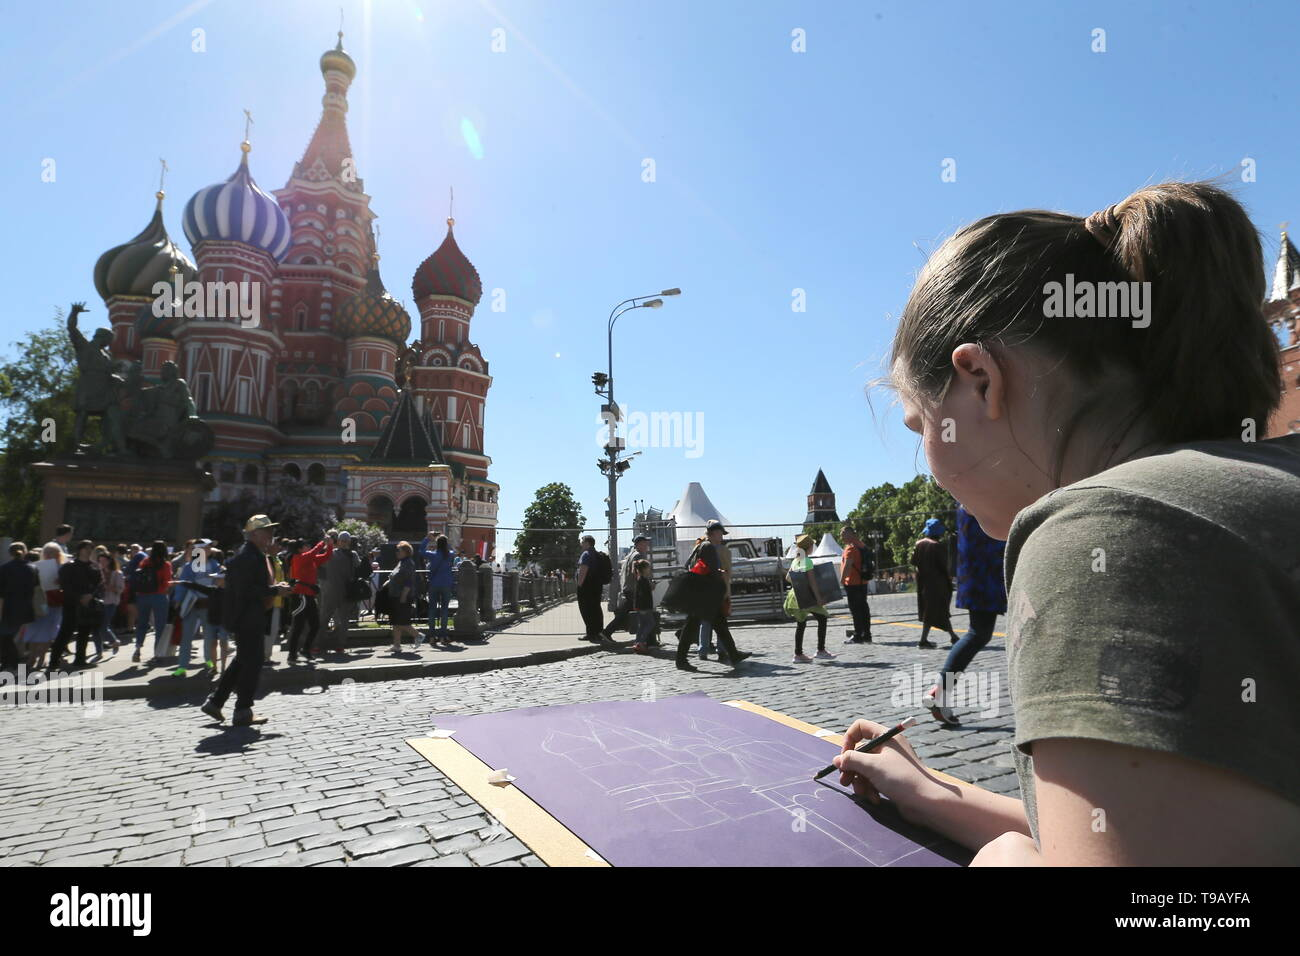 MOSCOW, RUSSIA - MAY 18, 2019: A young girl drawing St Basil's Cathedral during the 9th Draw St Basil's Cathedral art festival in Red Square. Gavriil Grigorov/TASS - Stock Image